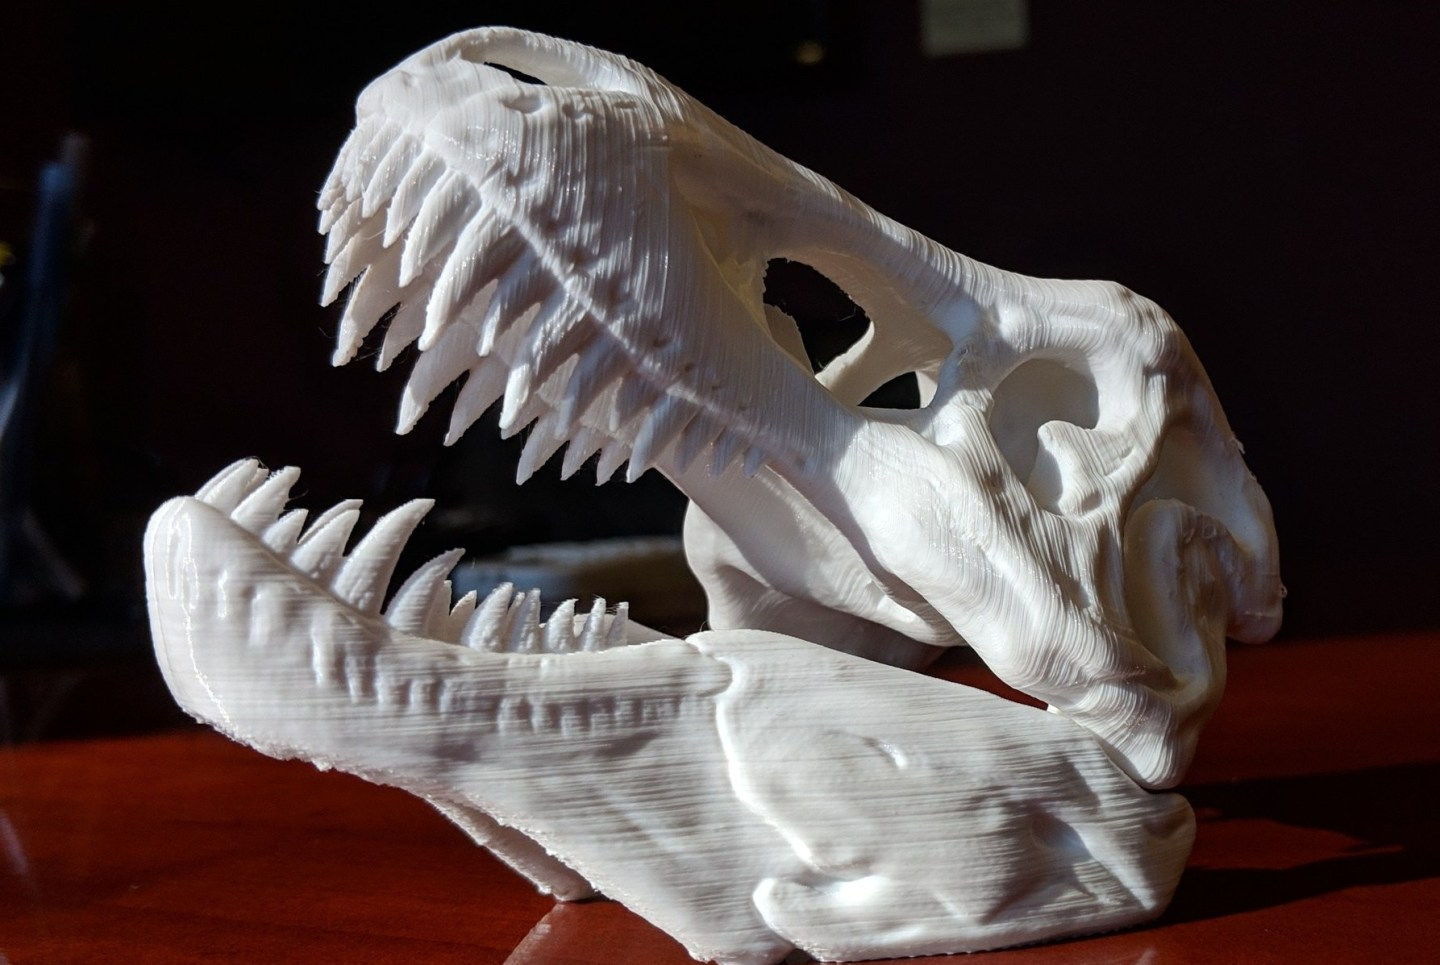 3d printed t-rex head